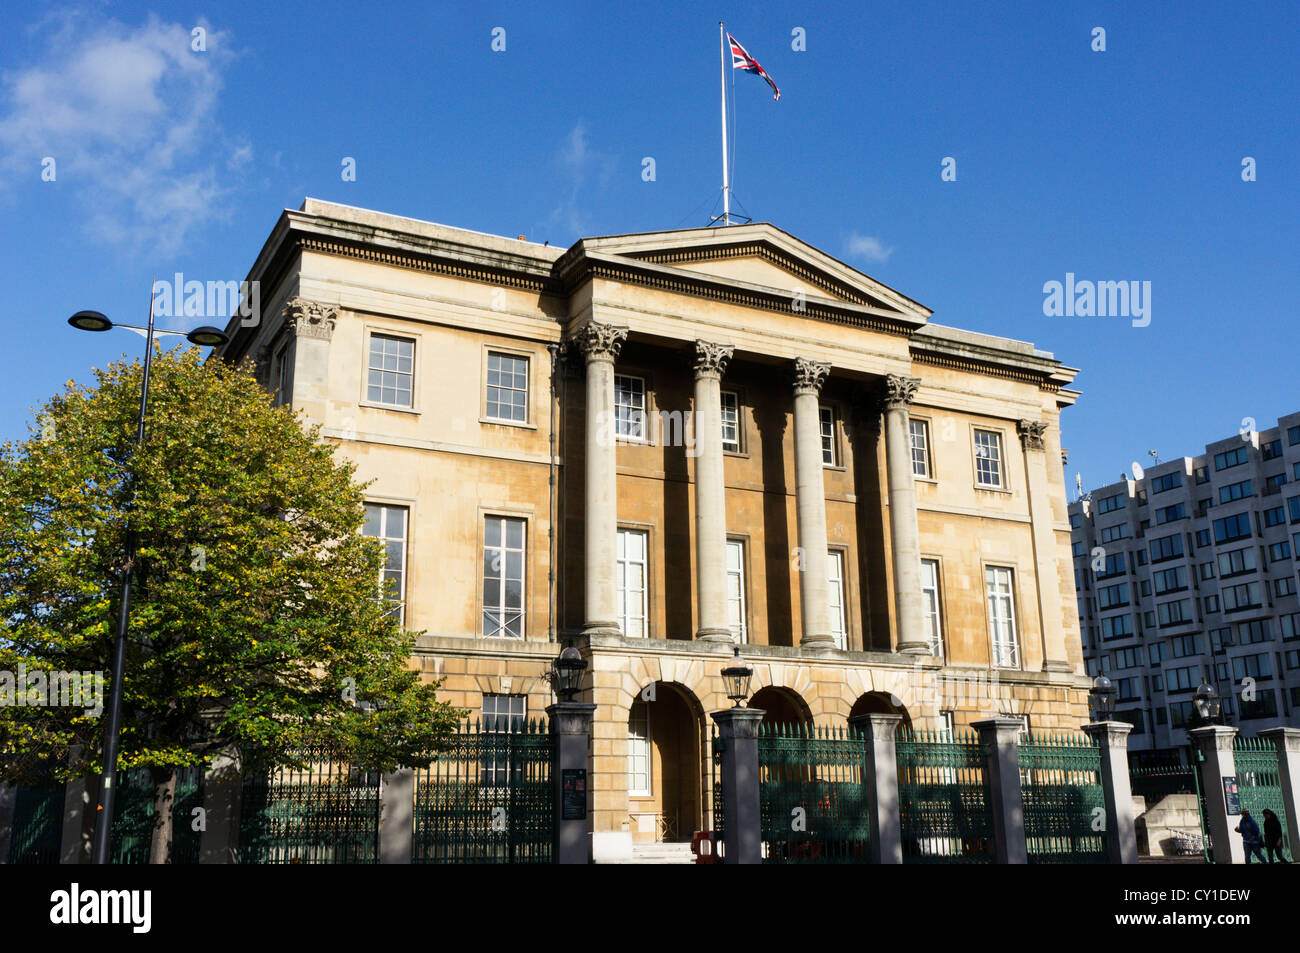 Apsley House at Hyde Park Corner in Central London, known as No 1 London. - Stock Image